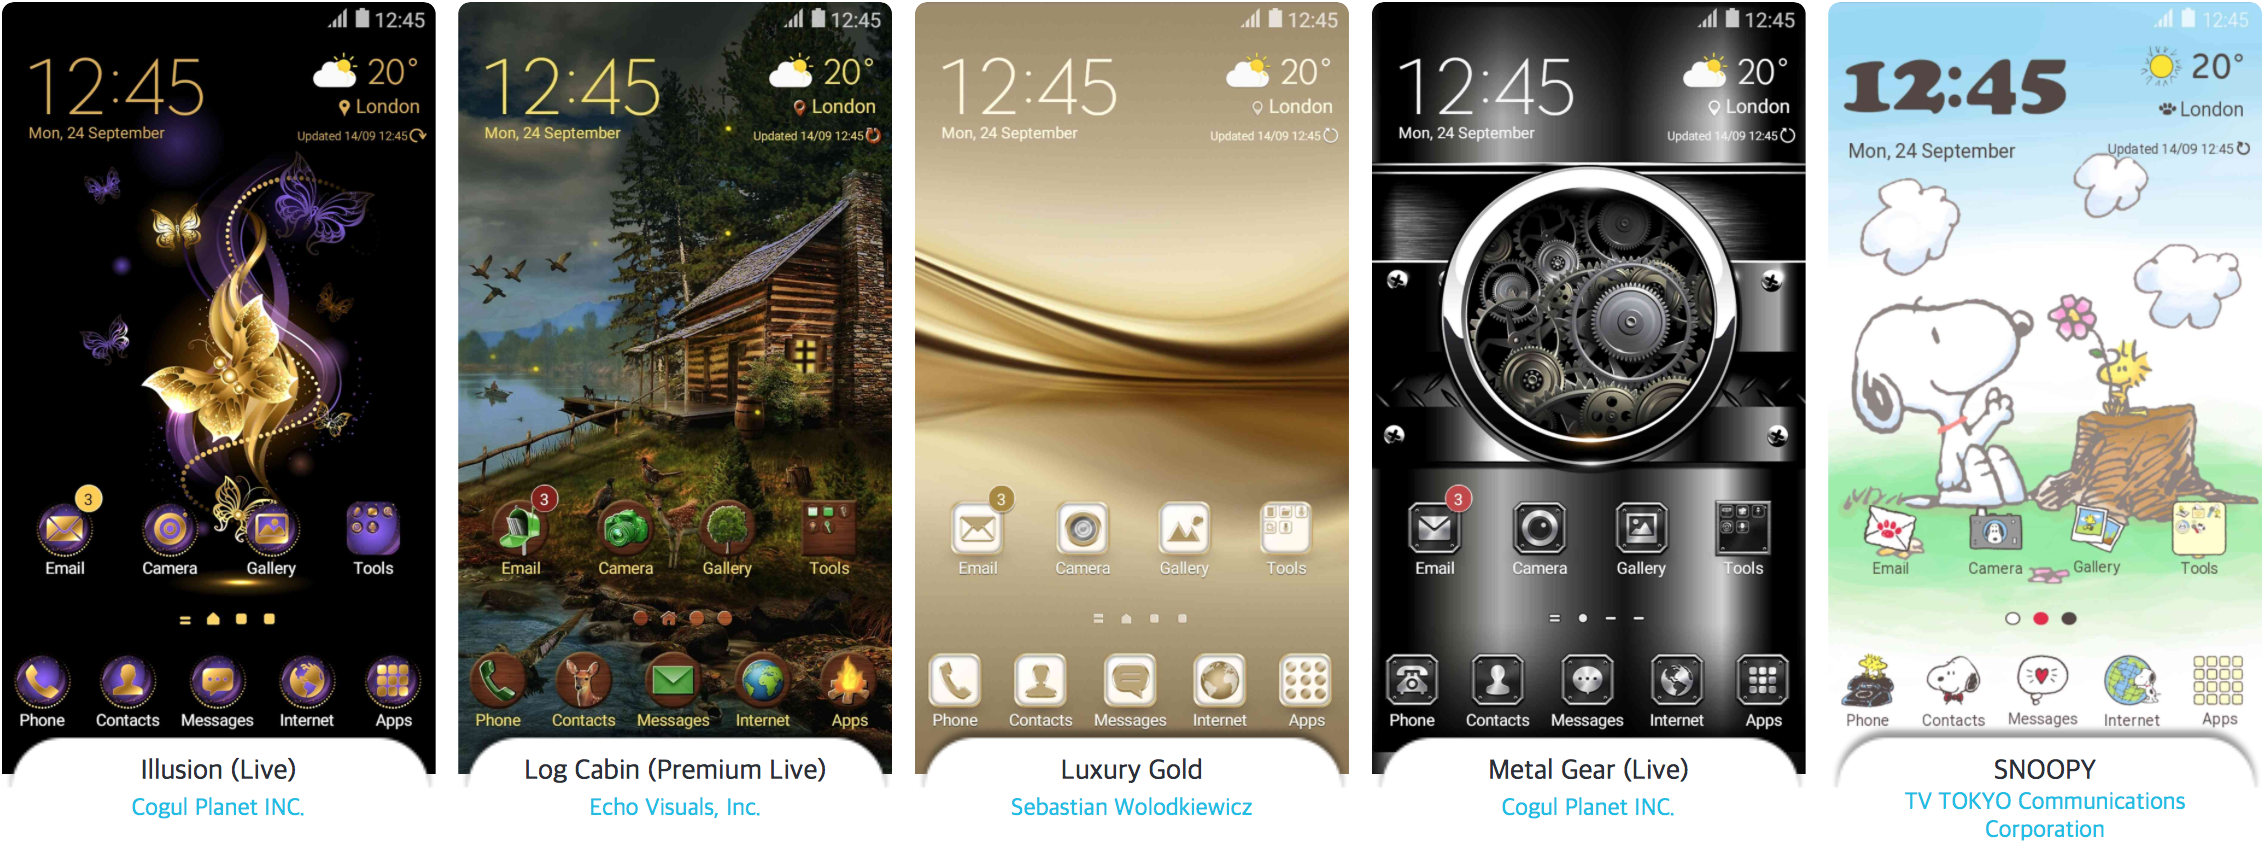 Samsung showcases the best themes of 2016 - SamMobile